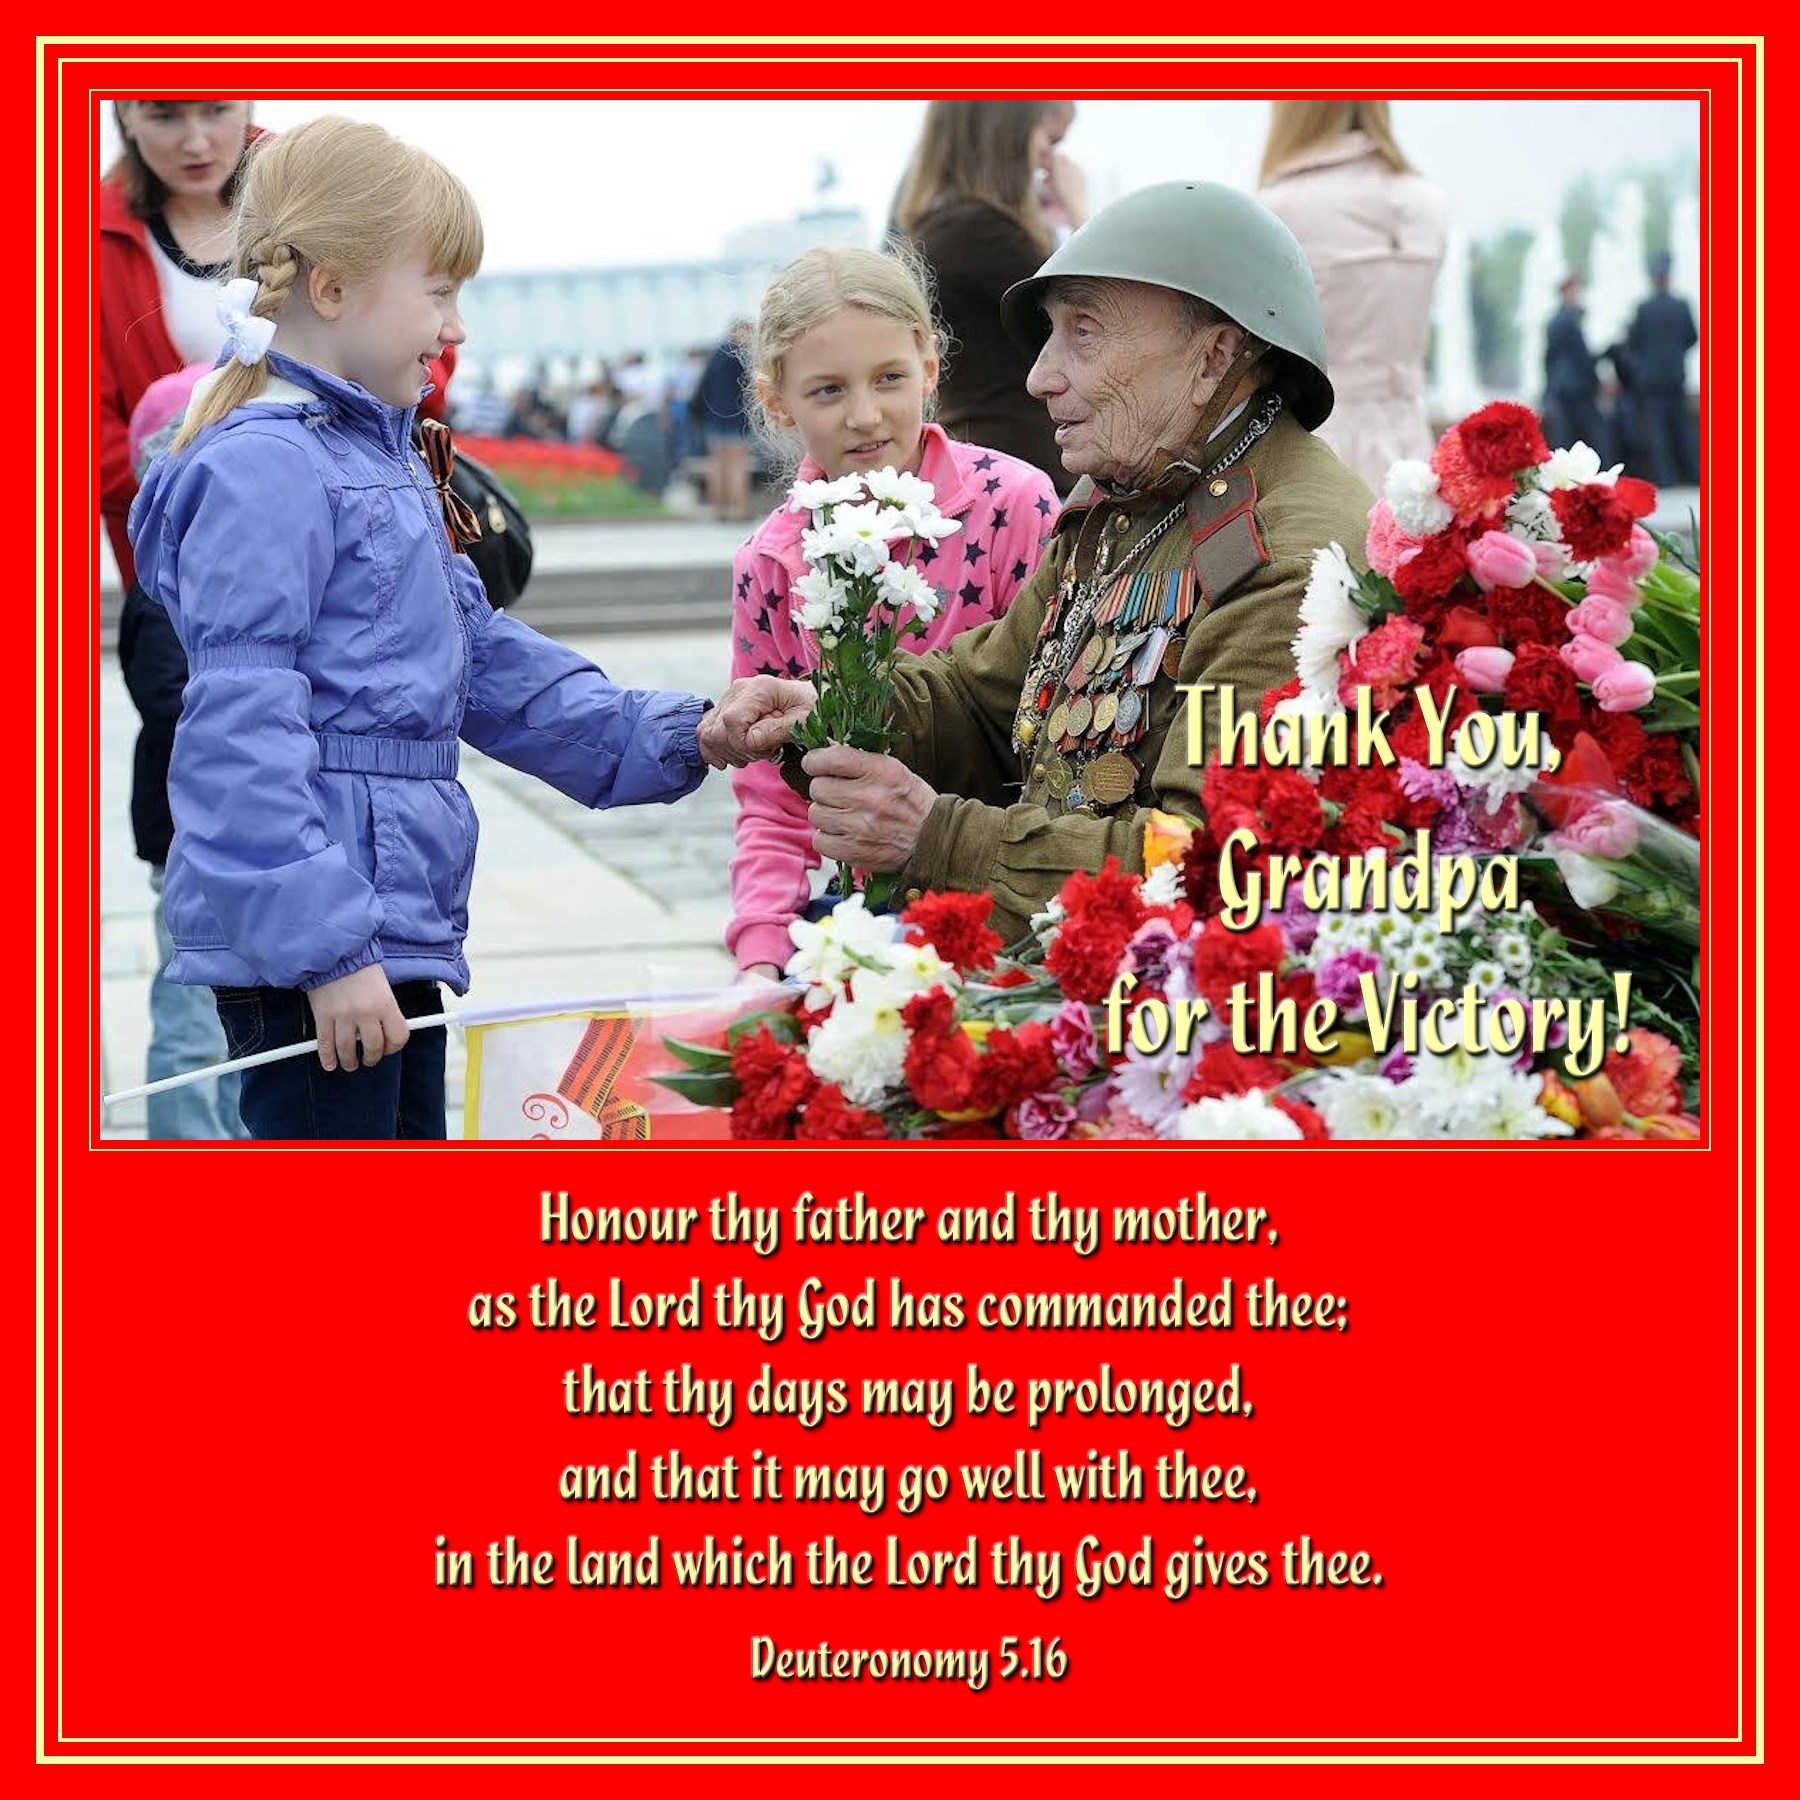 00 Honour Thy Father and Thy Mother. victory day 01 old veteran russia. 22.04.15